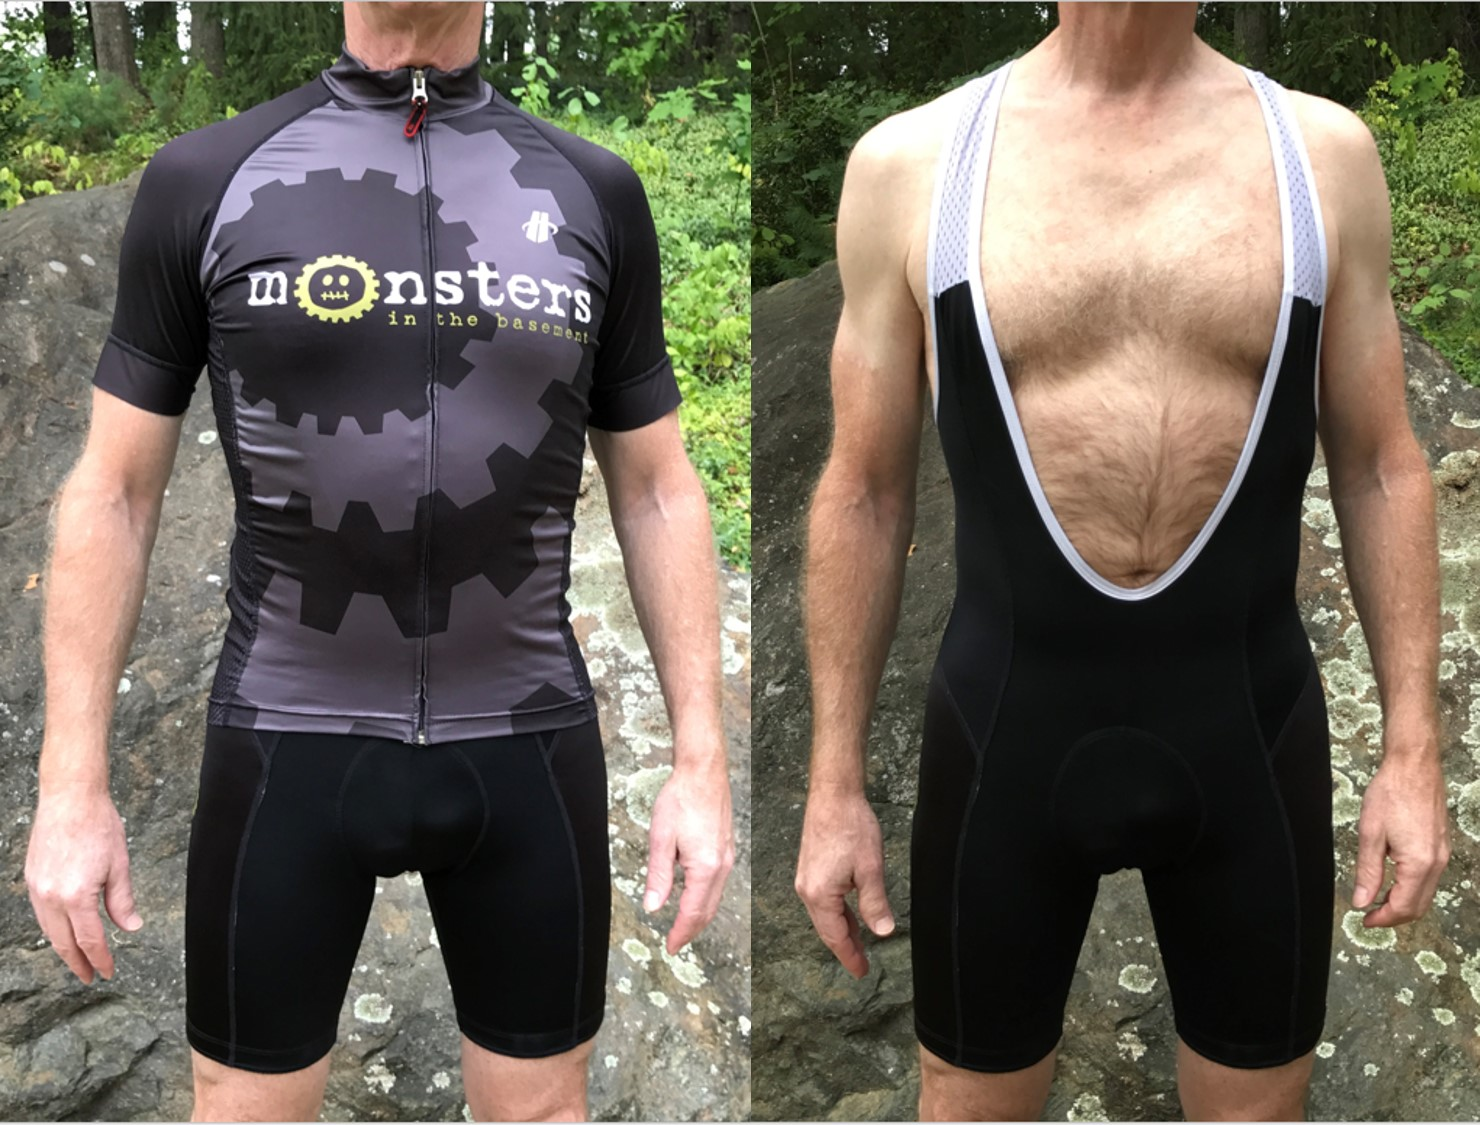 908e5de83 Then Hincapie Velocity Plus jersey shown here with the Axis bib shorts